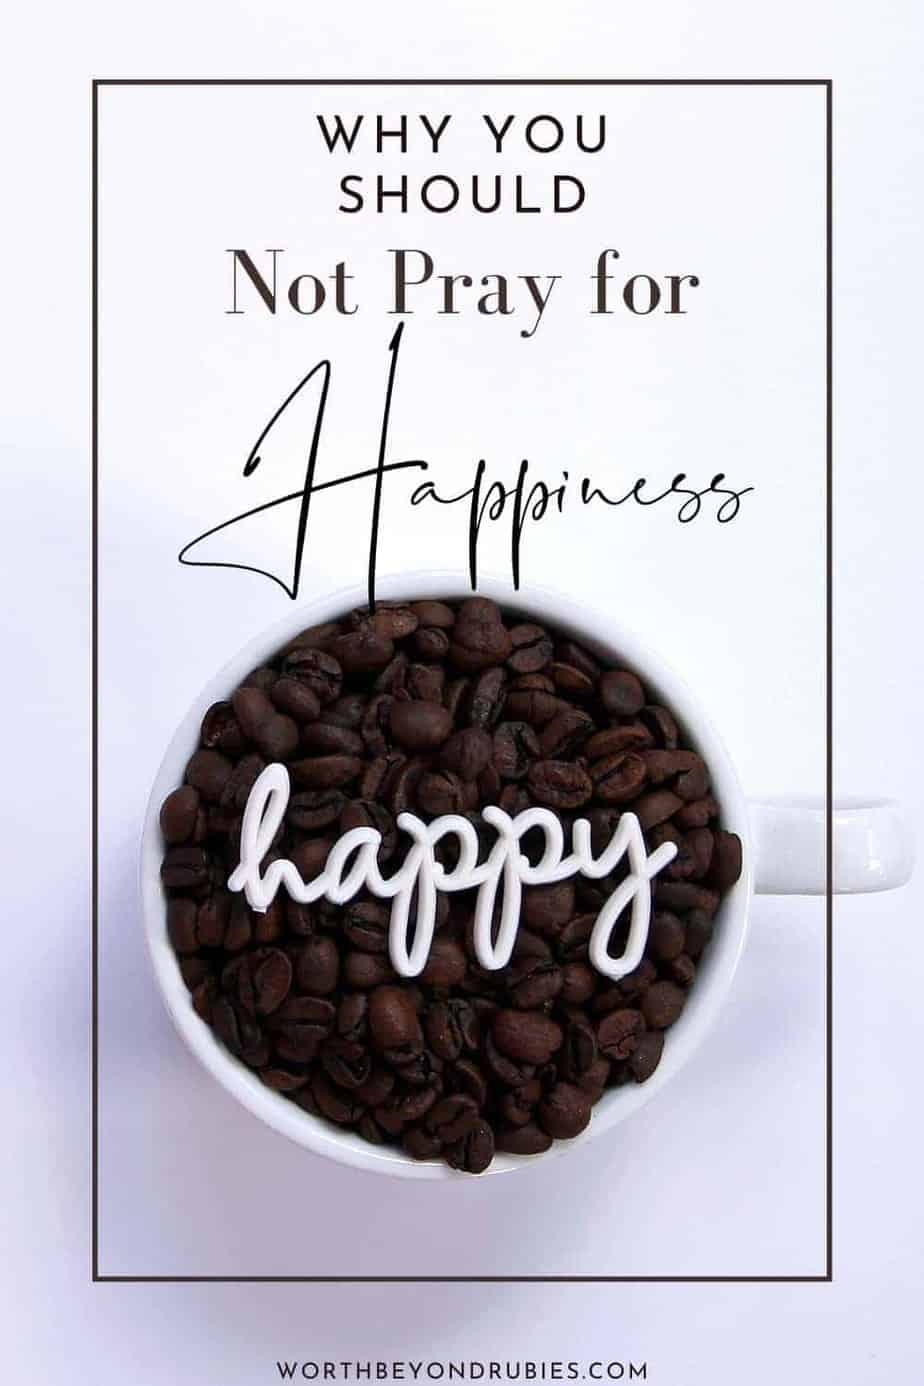 An image of a mug filled with coffee beans and the word happy written in script on top of it with a text overlay that says Why You Should Not Pray for Happiness and a link to worthbeyondrubies.com